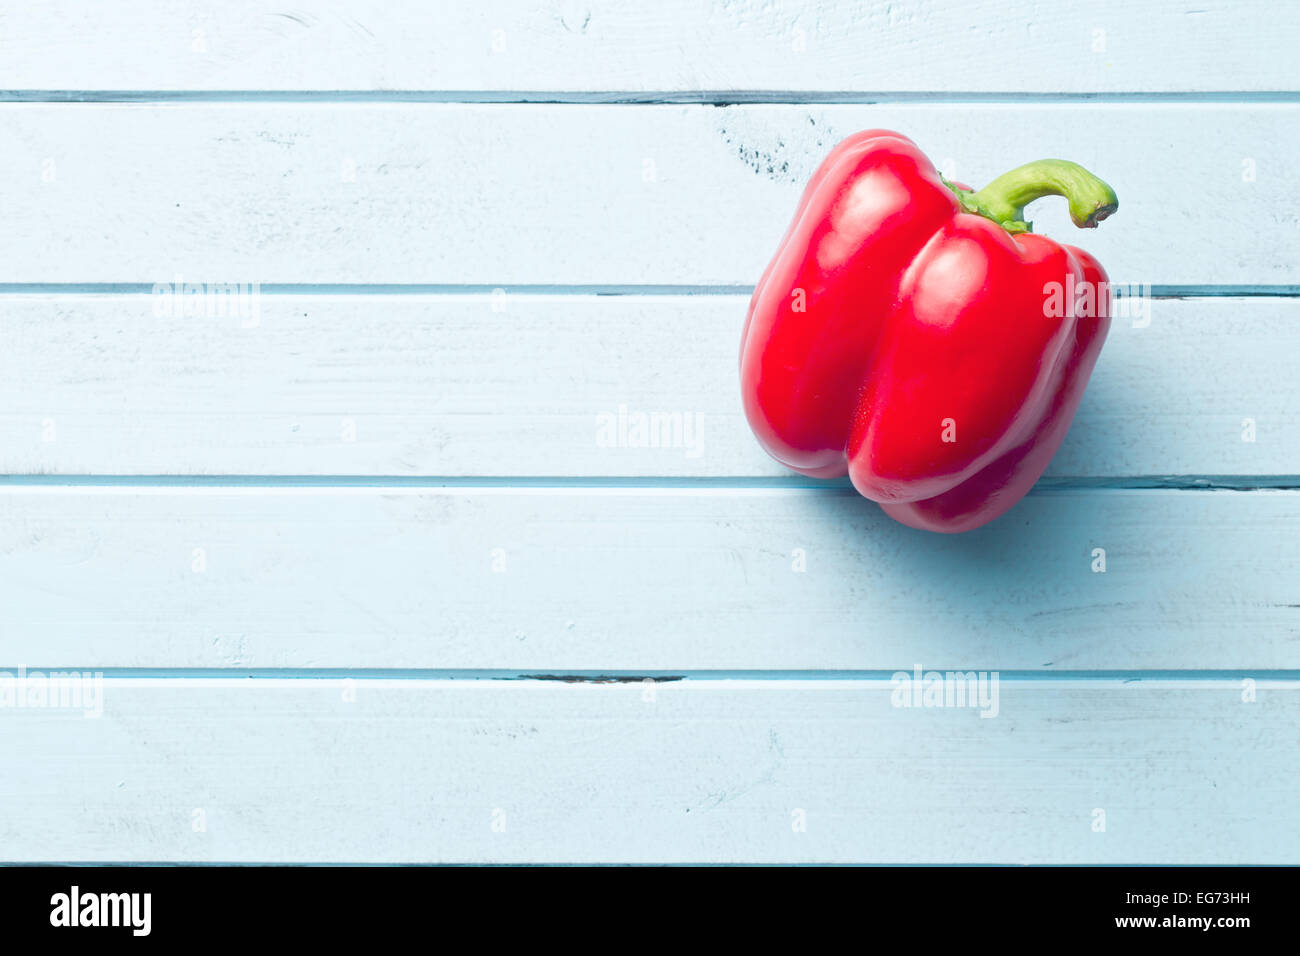 red pepper on kitchen table - Stock Image